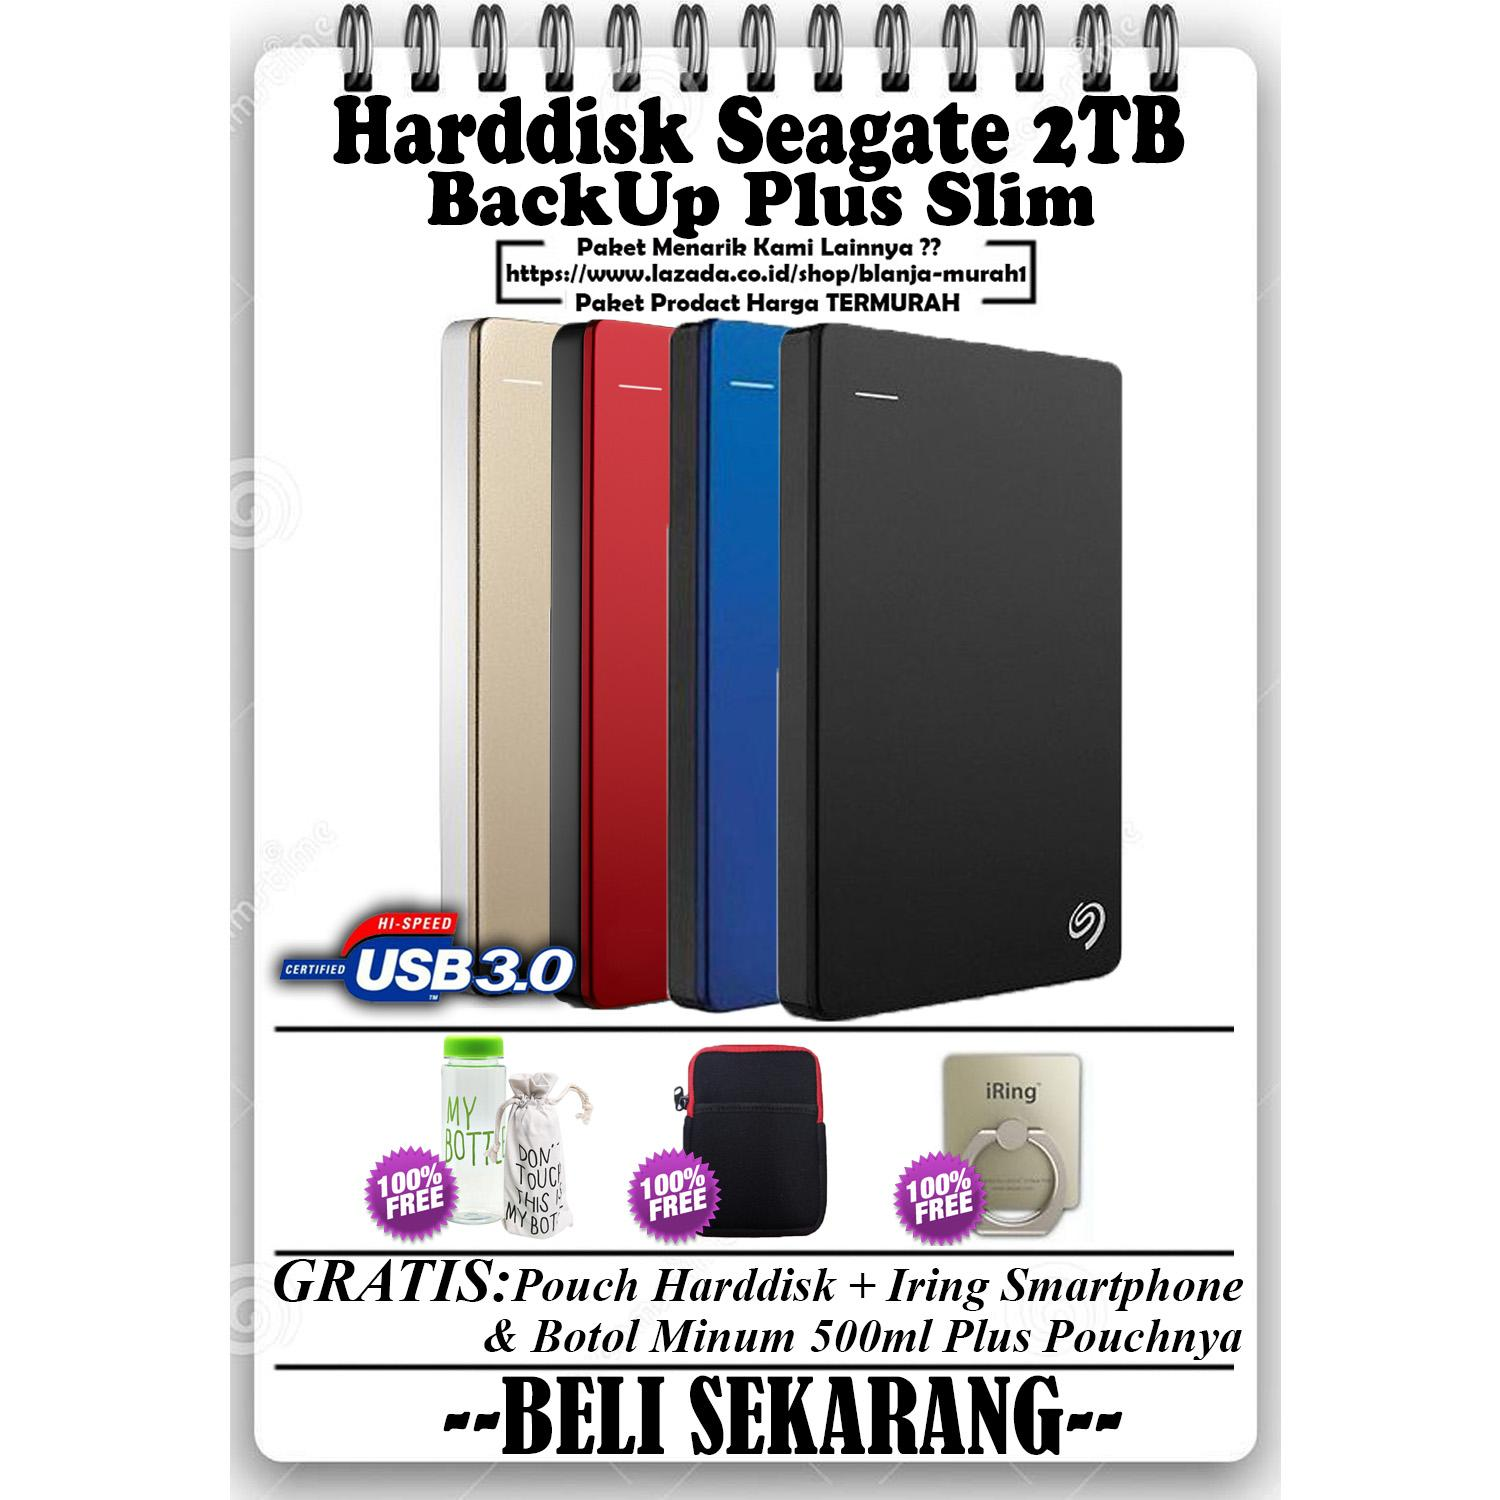 Seagate Backup Plus Slim 2TB - HDD - HD - Hardisk External 2.5 - GRATIS Pouch Harddisk Ext + My Botol Air Minum 500ml + Sarung Pouch My Bottle & Iring Stand Hp/Tablet